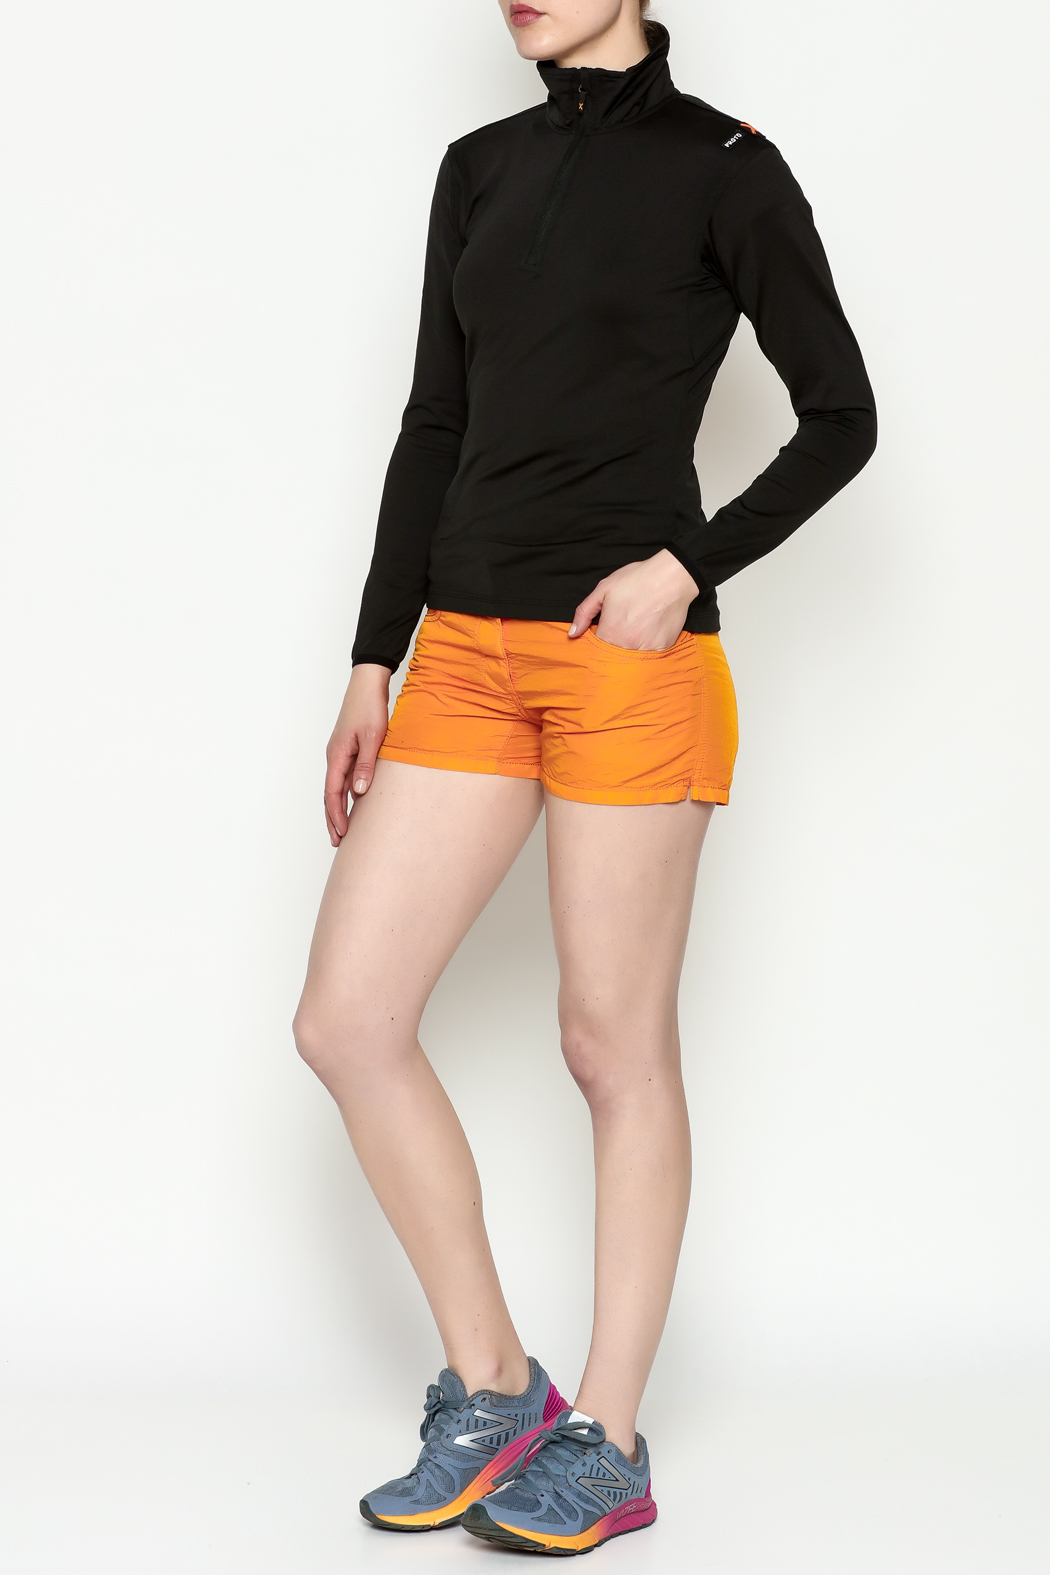 PROTOXTYPE Zippered Long Sleeve Top - Side Cropped Image